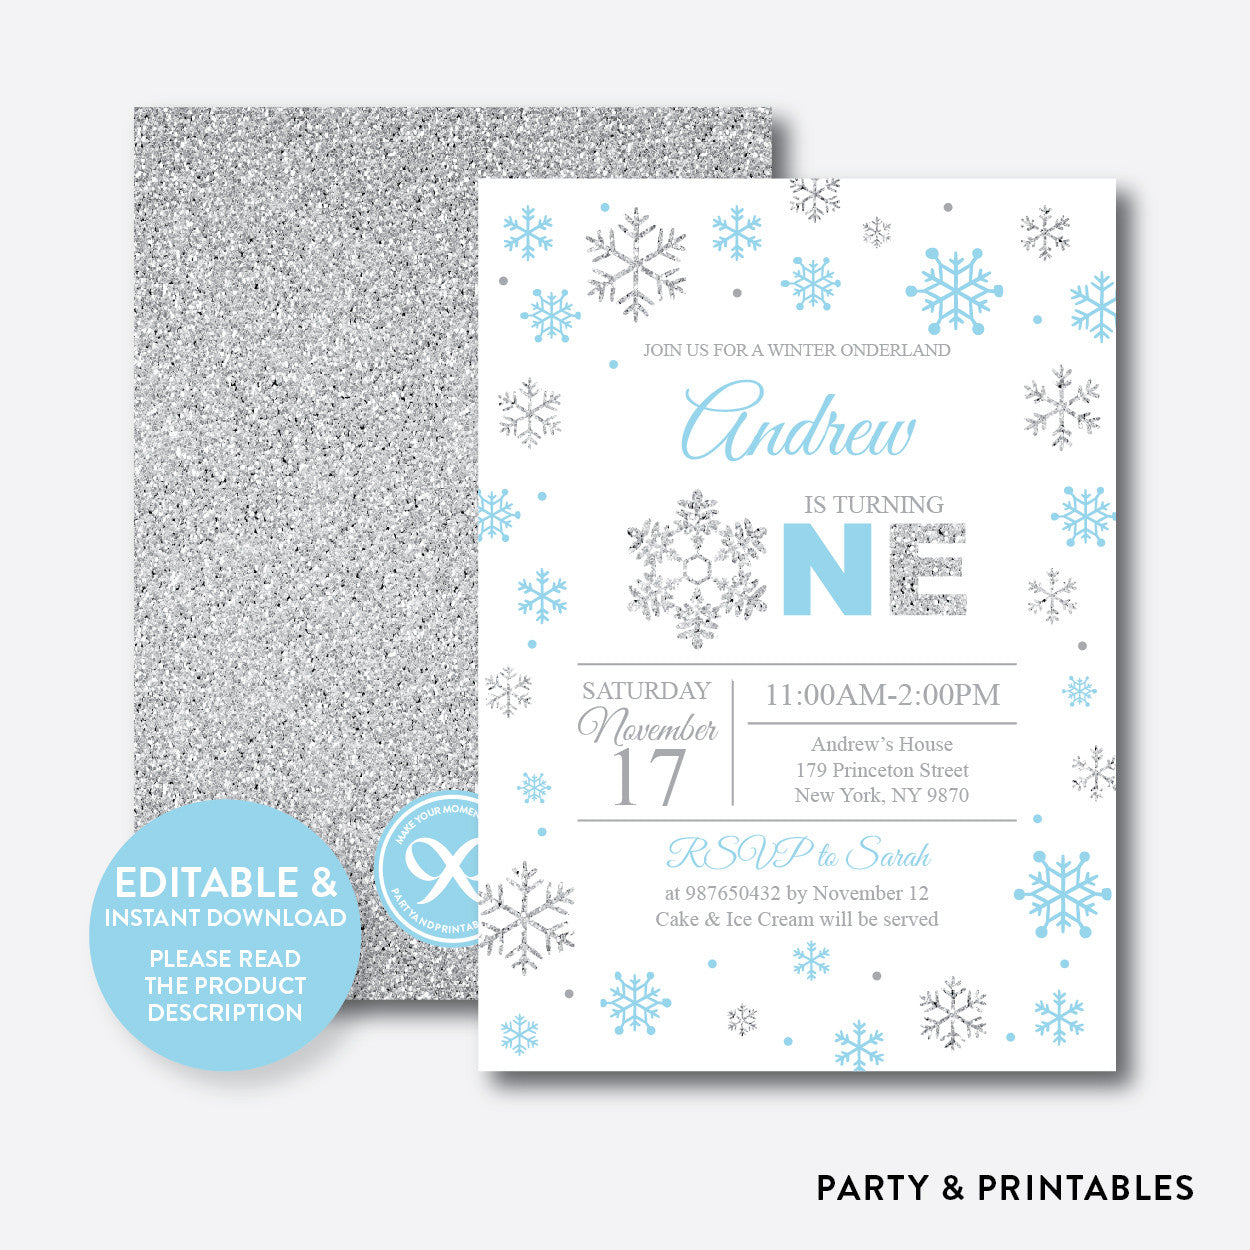 Winter Onederland Glitter 1st Birthday Invitation / Editable / Instant Download (GKB.04B), invitation - Party and Printables